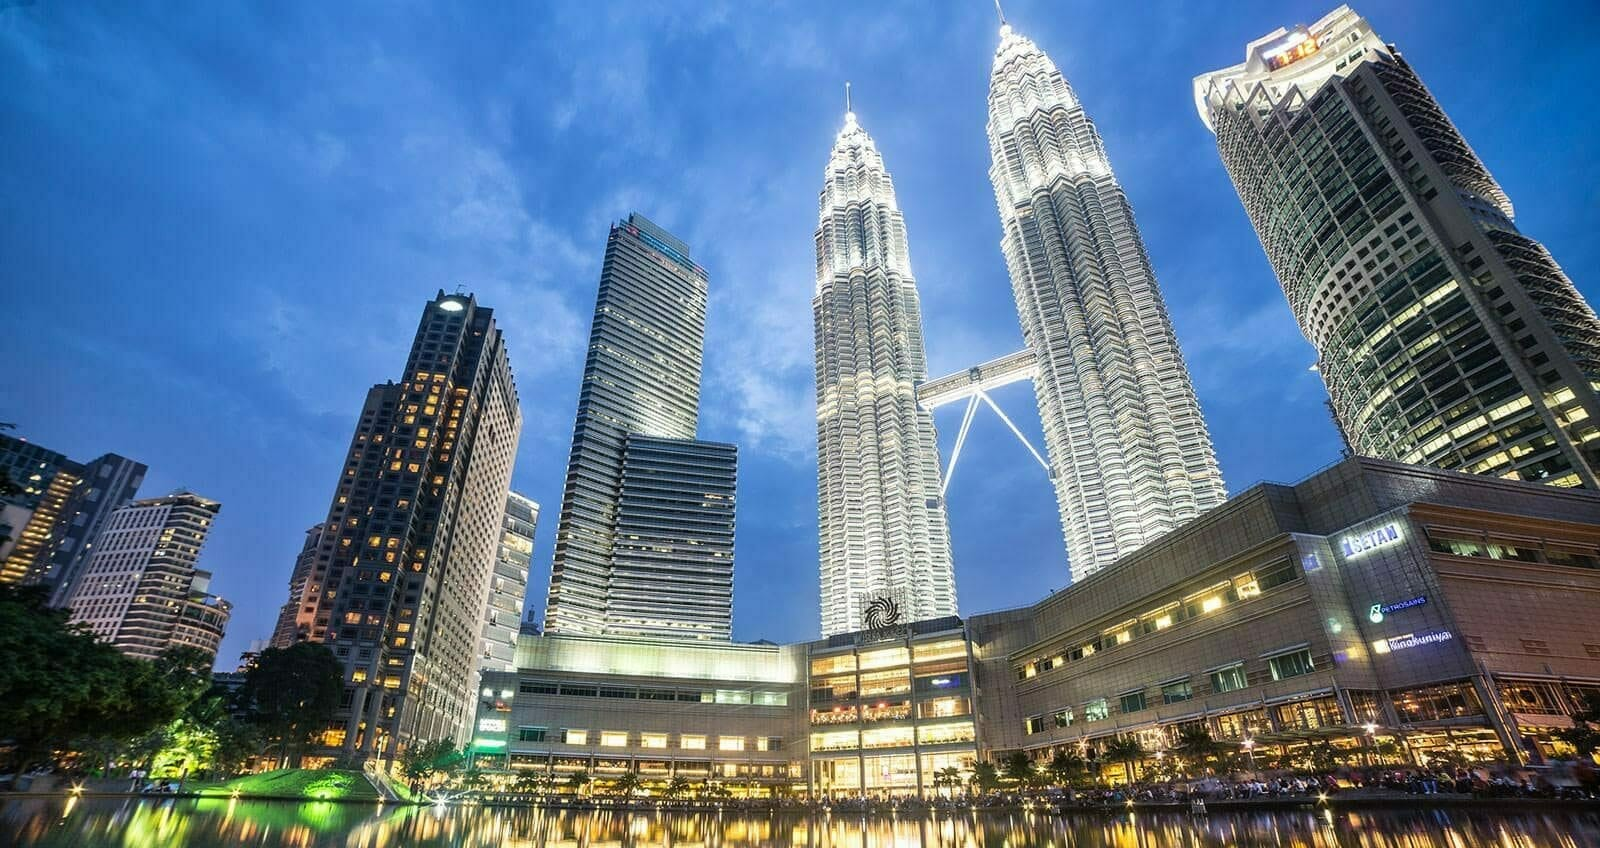 KLCC Twin Towers lit up at night